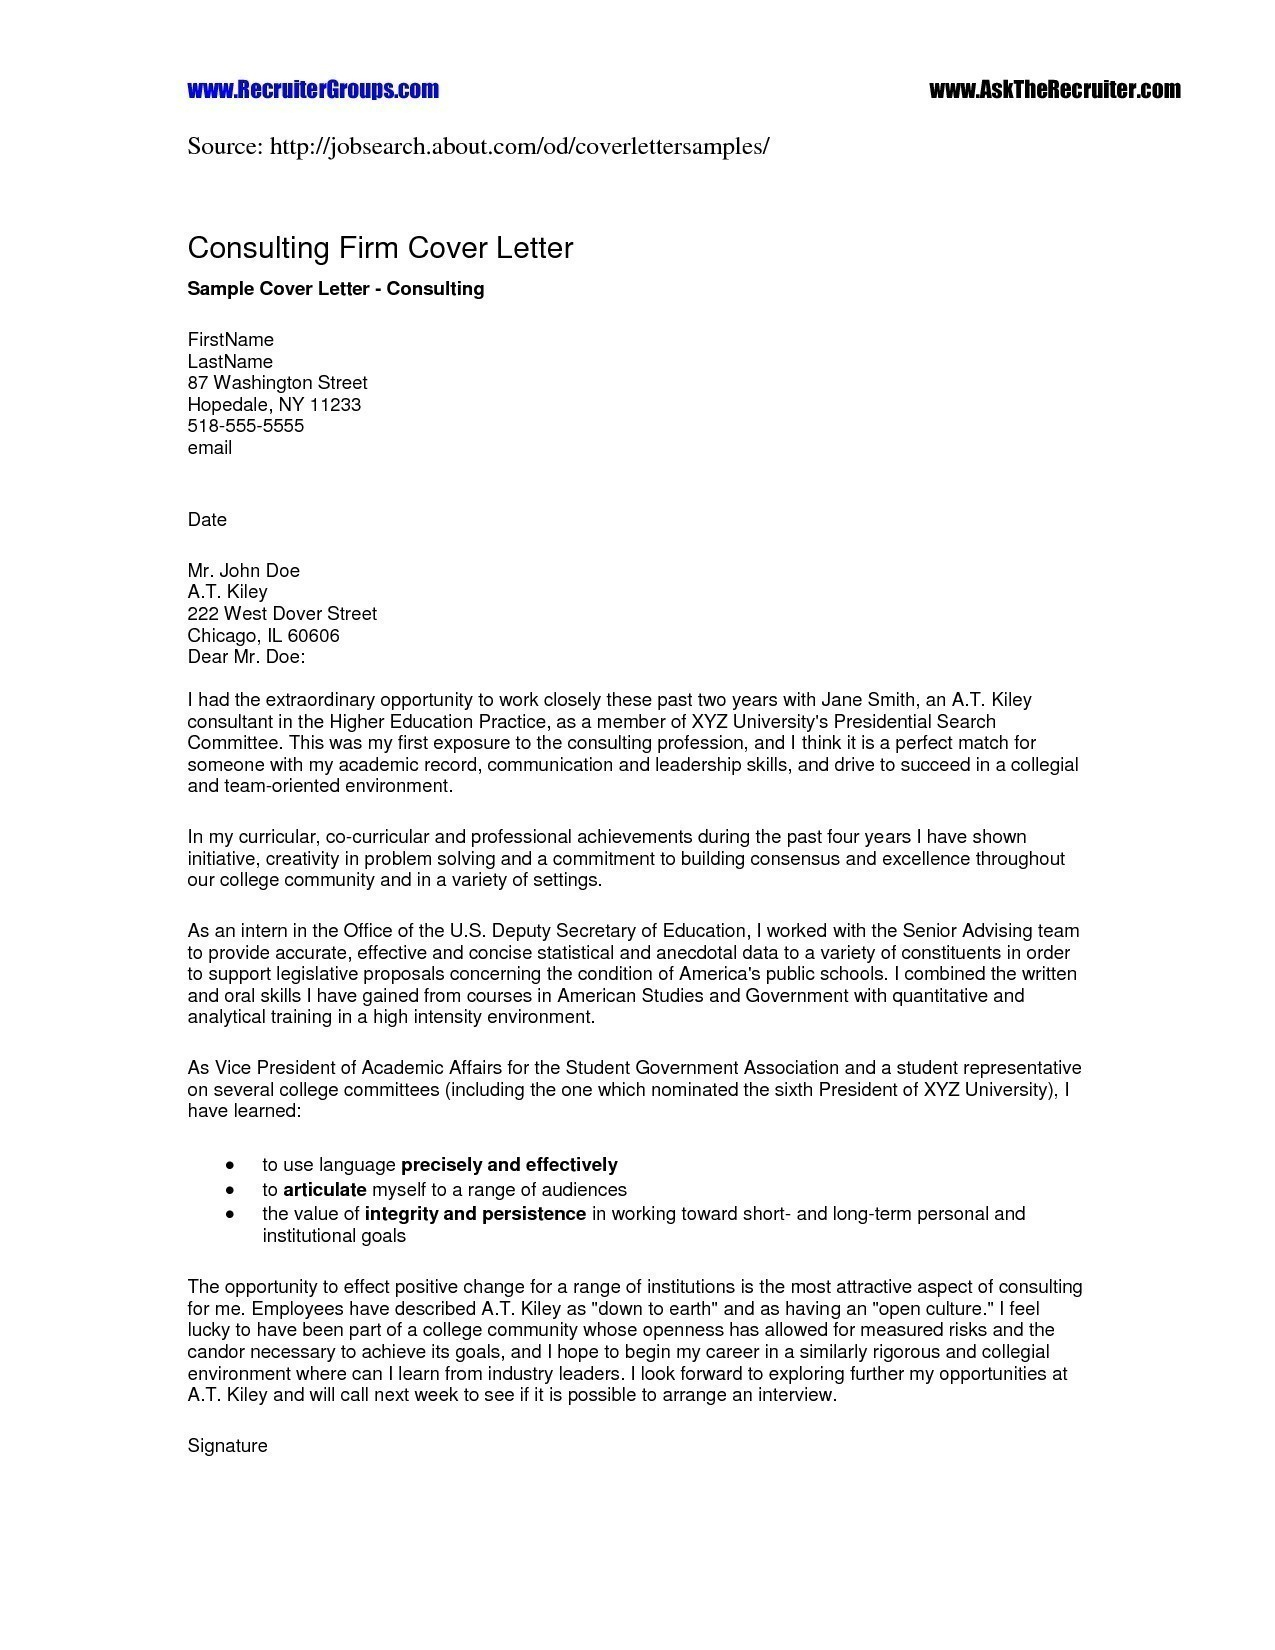 Vehicle Storage Fee Letter Template - Sample Job Fer Letter Template Collection